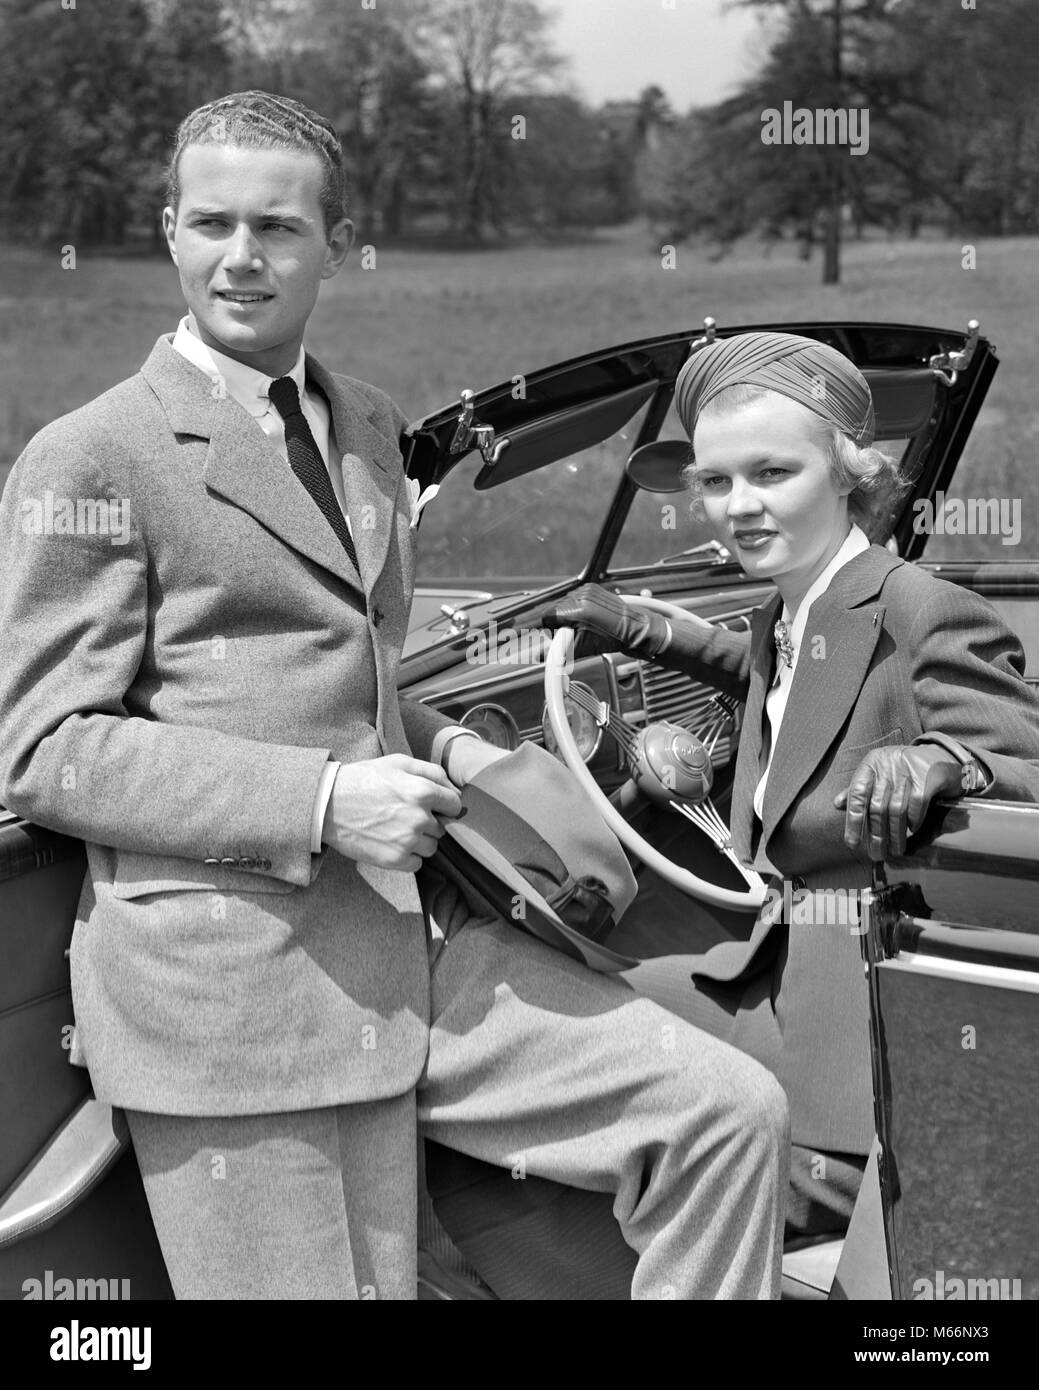 1930s COUPLE WOMAN SITTING IN DRIVER'S SEAT OF CONVERTIBLE CAR MAN LEANING ON OPEN DOOR HOLDING HAT - m161 HAR001 - Stock Image